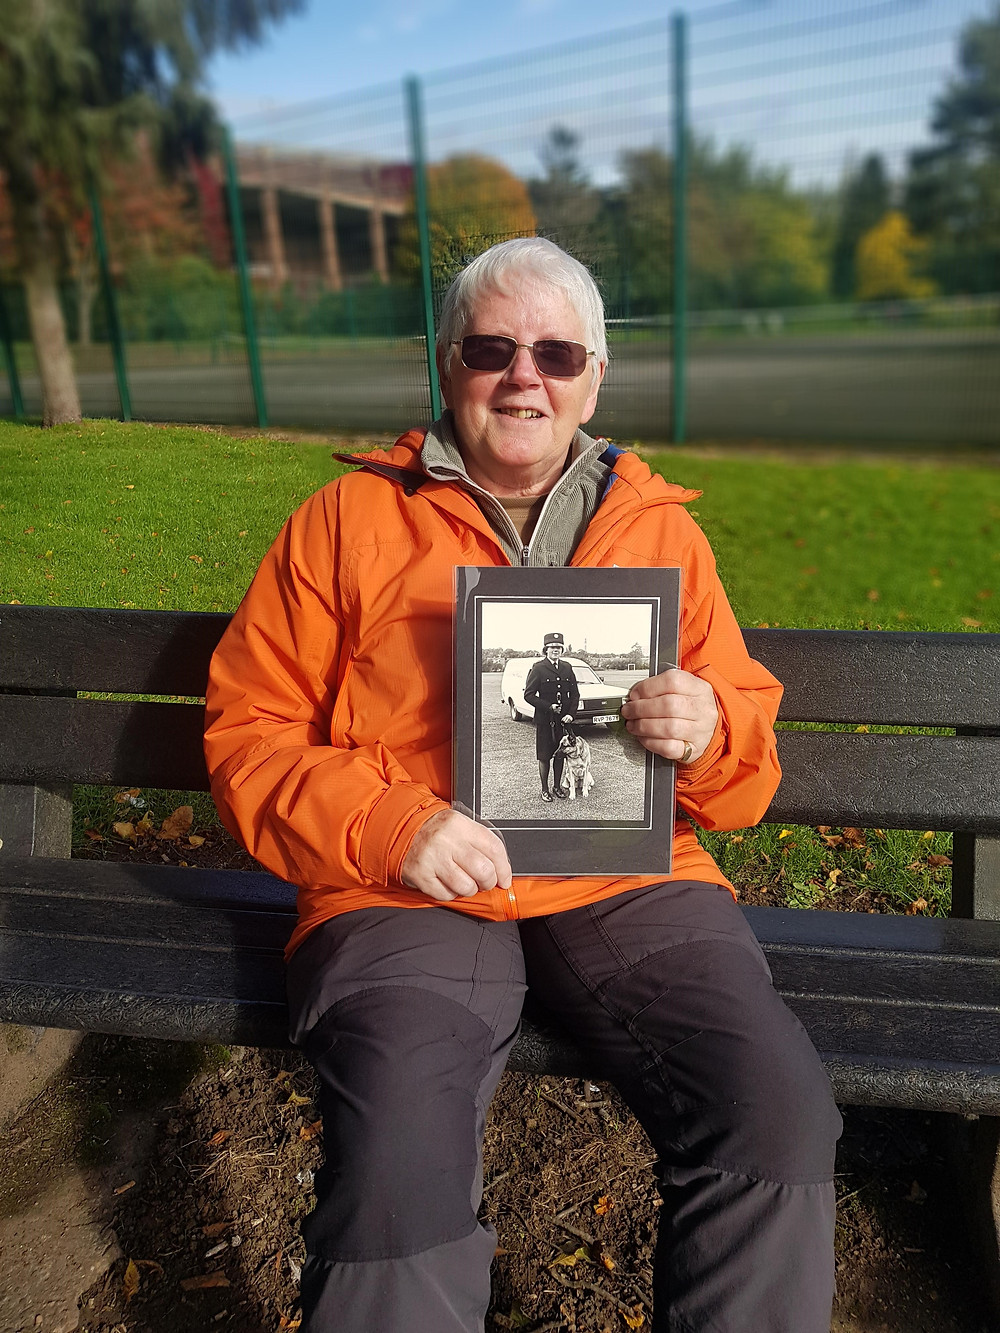 Jean sits on a bench holding a photograph of herself as a Birmingham Parks Police dog handler